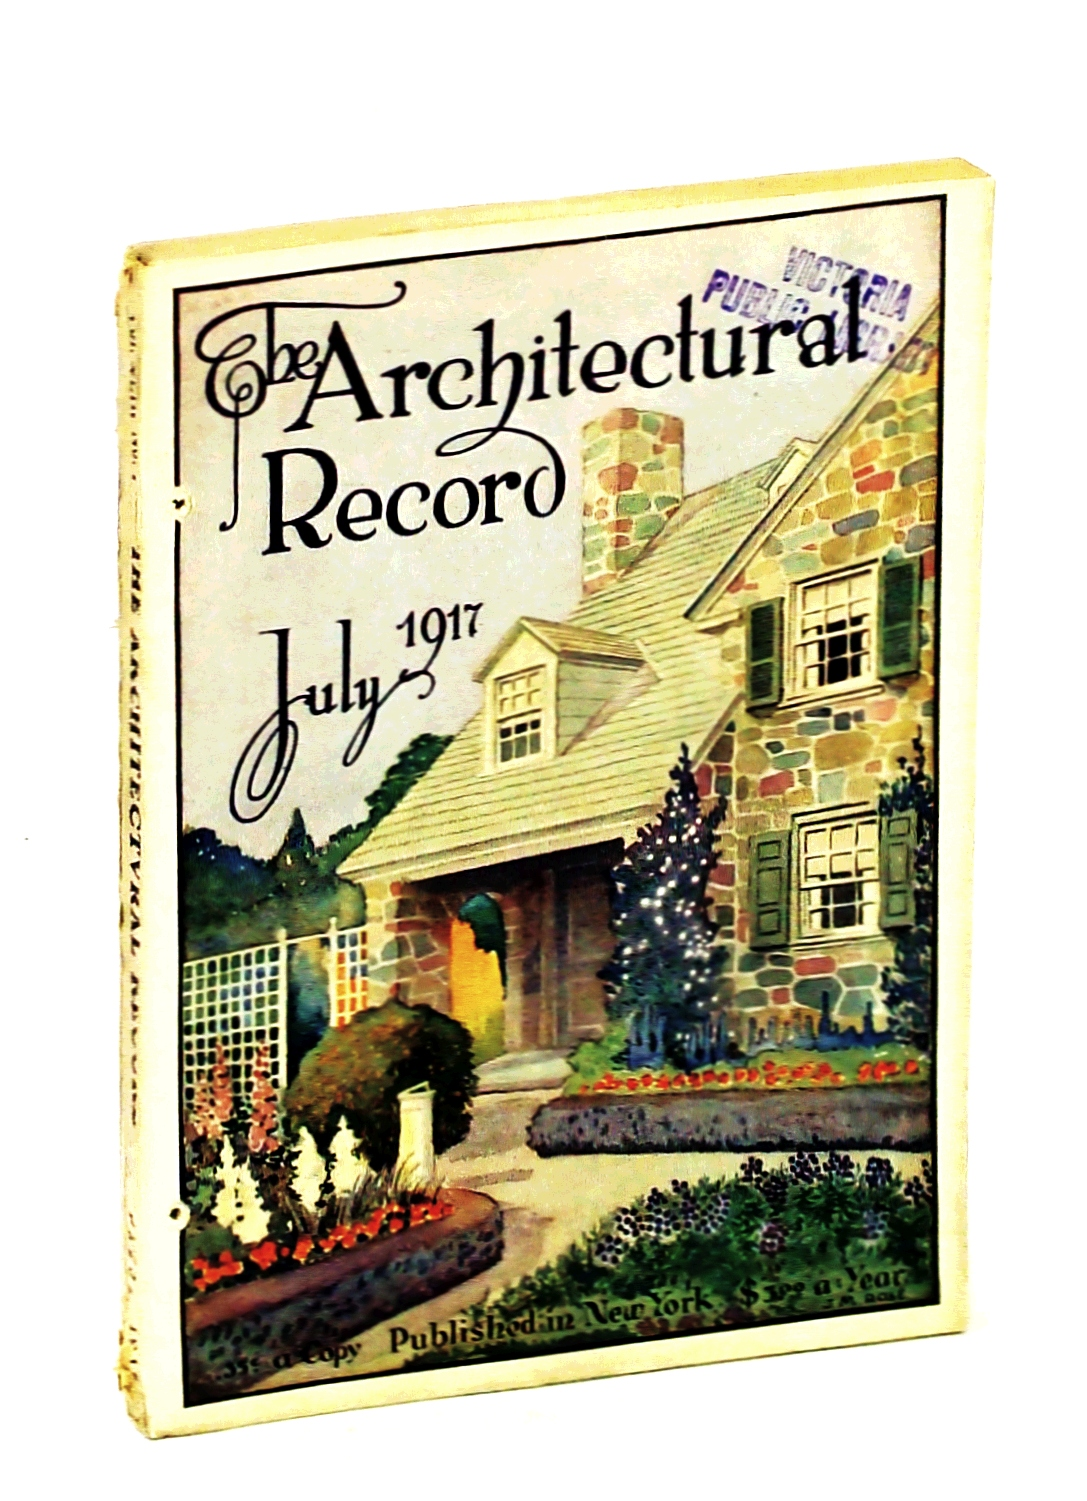 Image for The Architectural Record, July 1917, Vol. XLII, No. 1, Serial No. 226 - Peacock Point